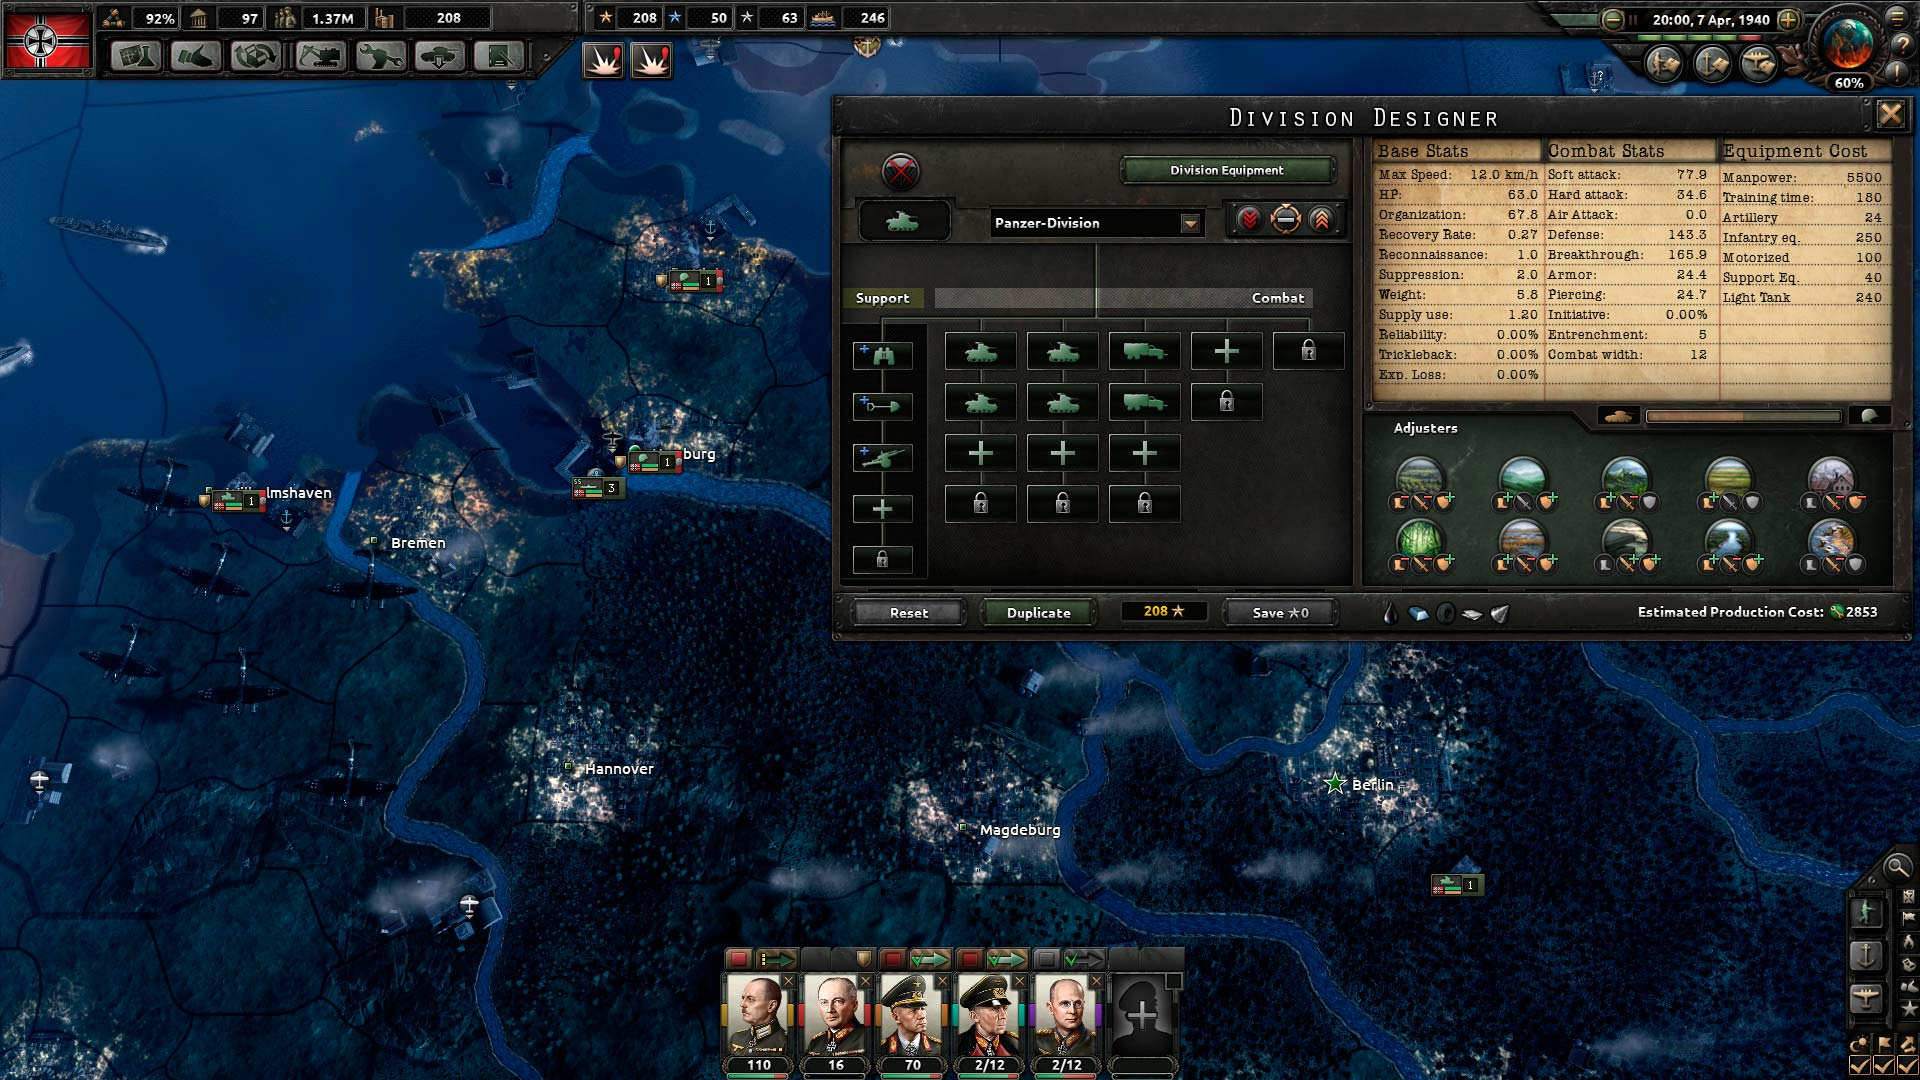 Скриншоты к Hearts of Iron 4: Field Marshal Edition v1.5.0 + Waking the Tiger DLC на русском Repack